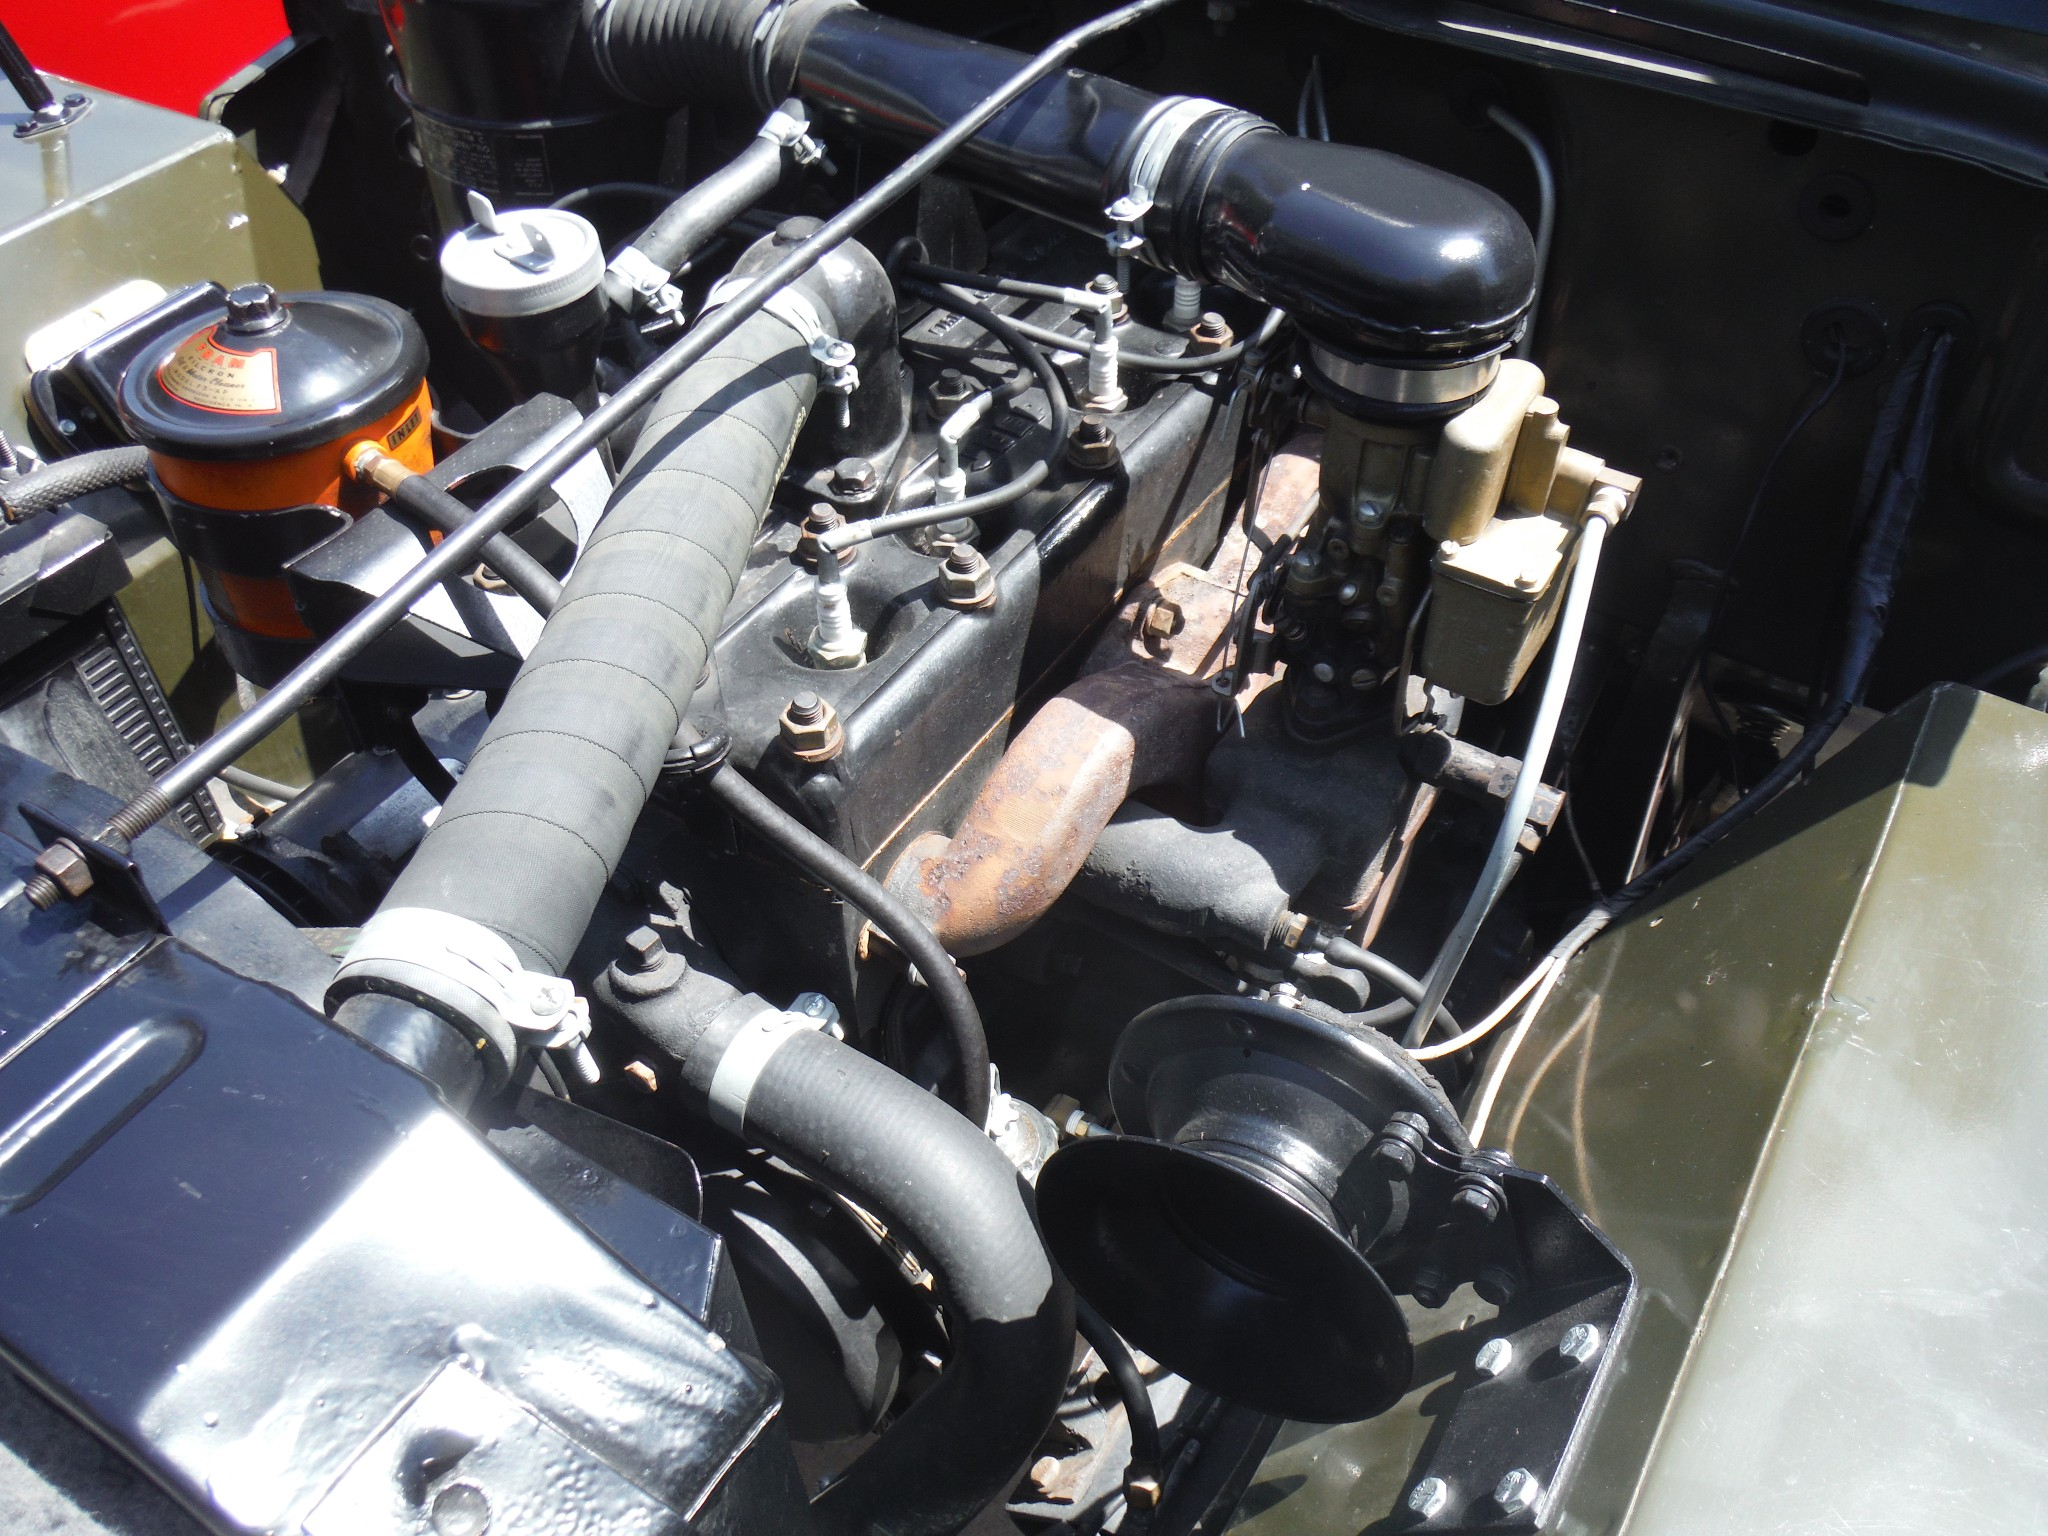 The engine is the familiar World War II four cylinder flat head side valve unit producing 60hp.